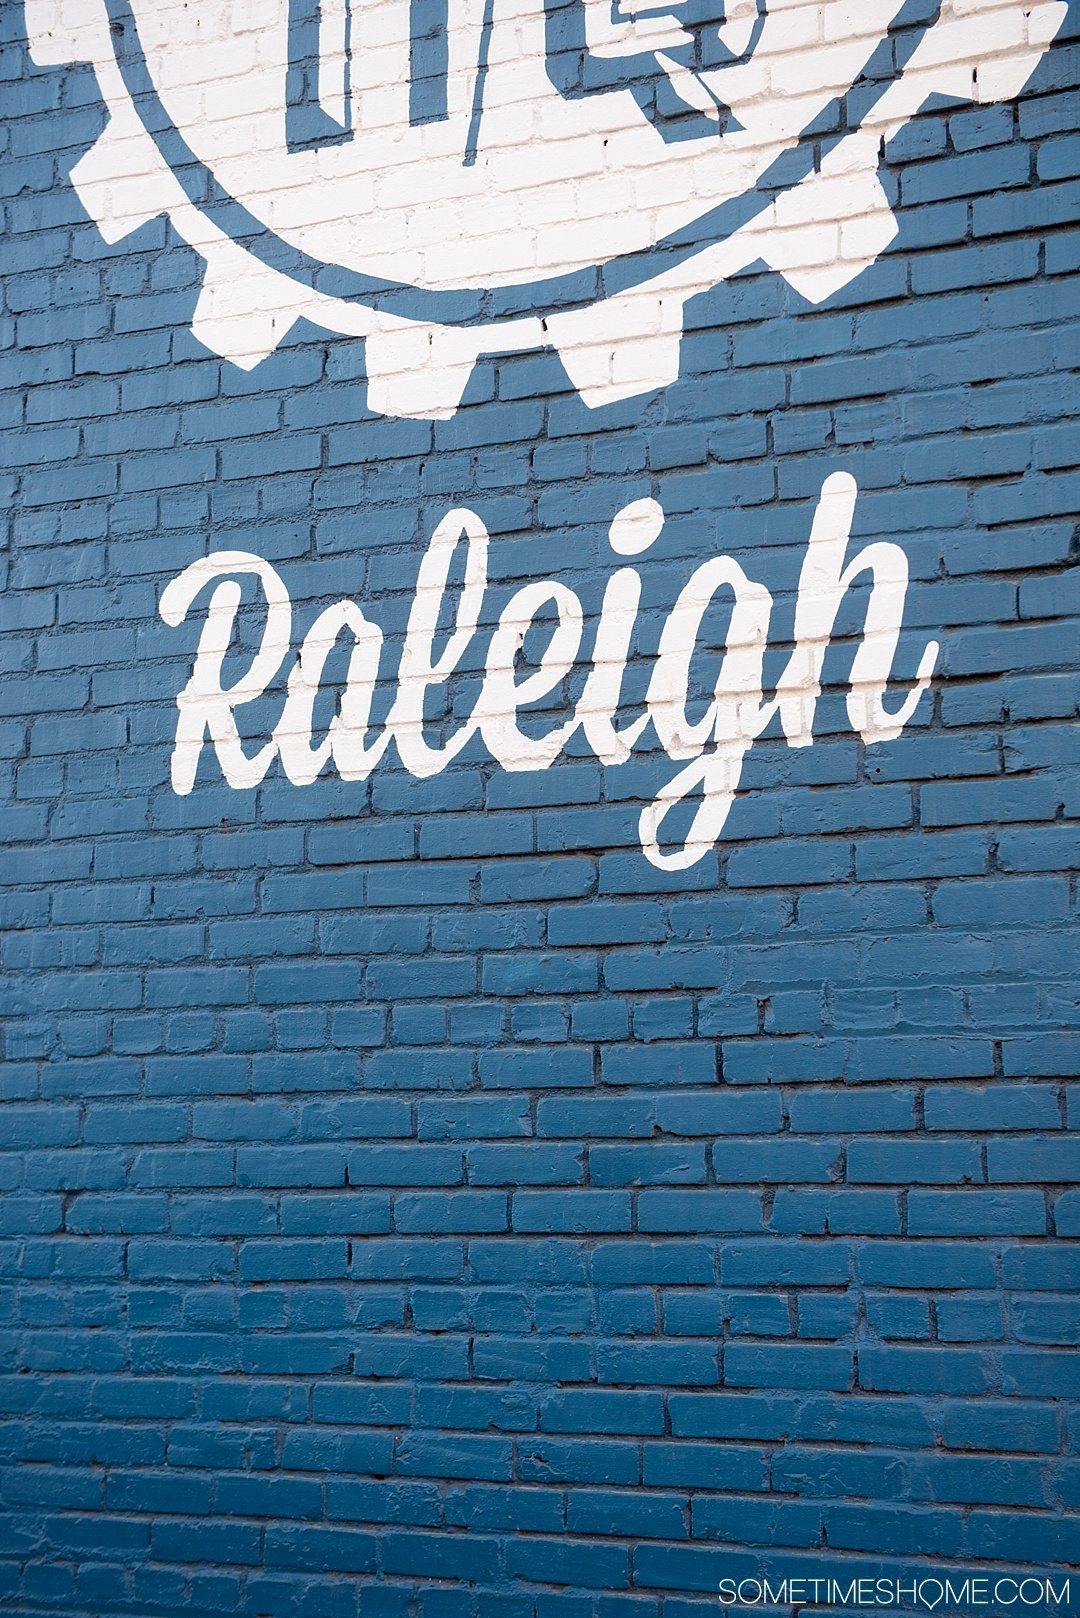 10 Best Downtown Raleigh Photography Spots on Sometimes Home travel blog. Photo of HQ Raleigh's blue mural wall.